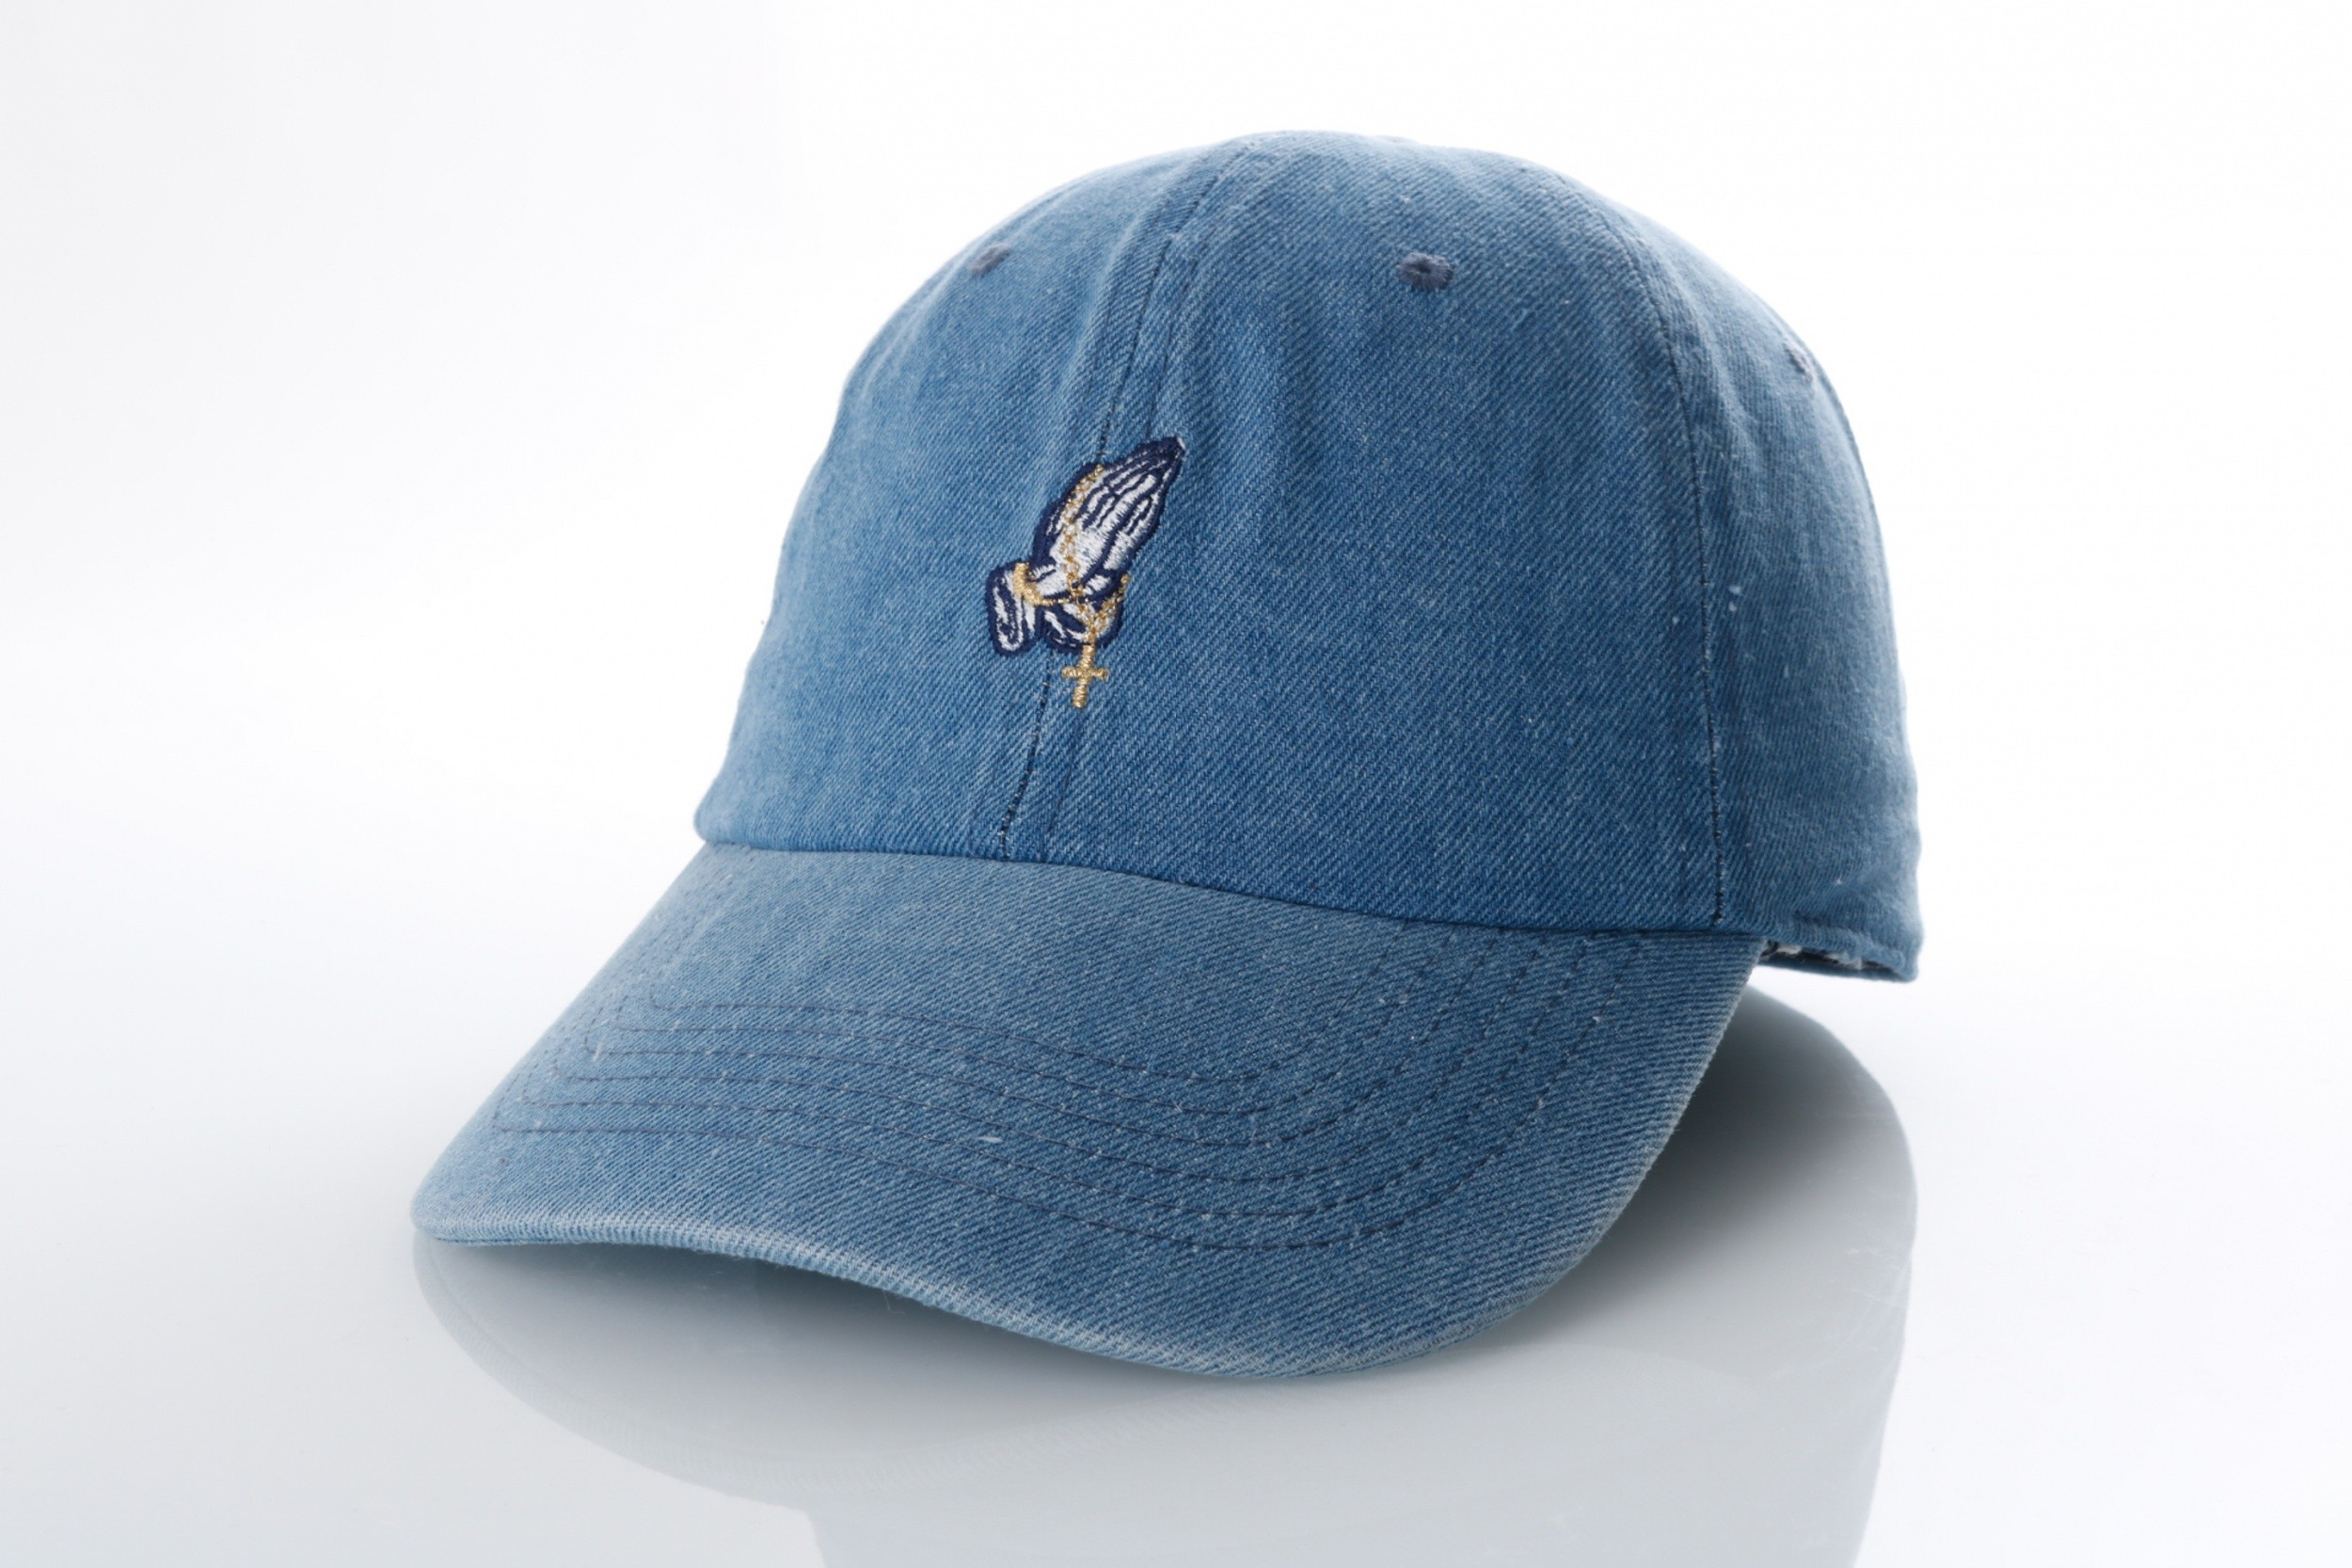 Foto van Ethos Pray KBSV-060 Medium denim KBSV-060 dad cap Medium denim